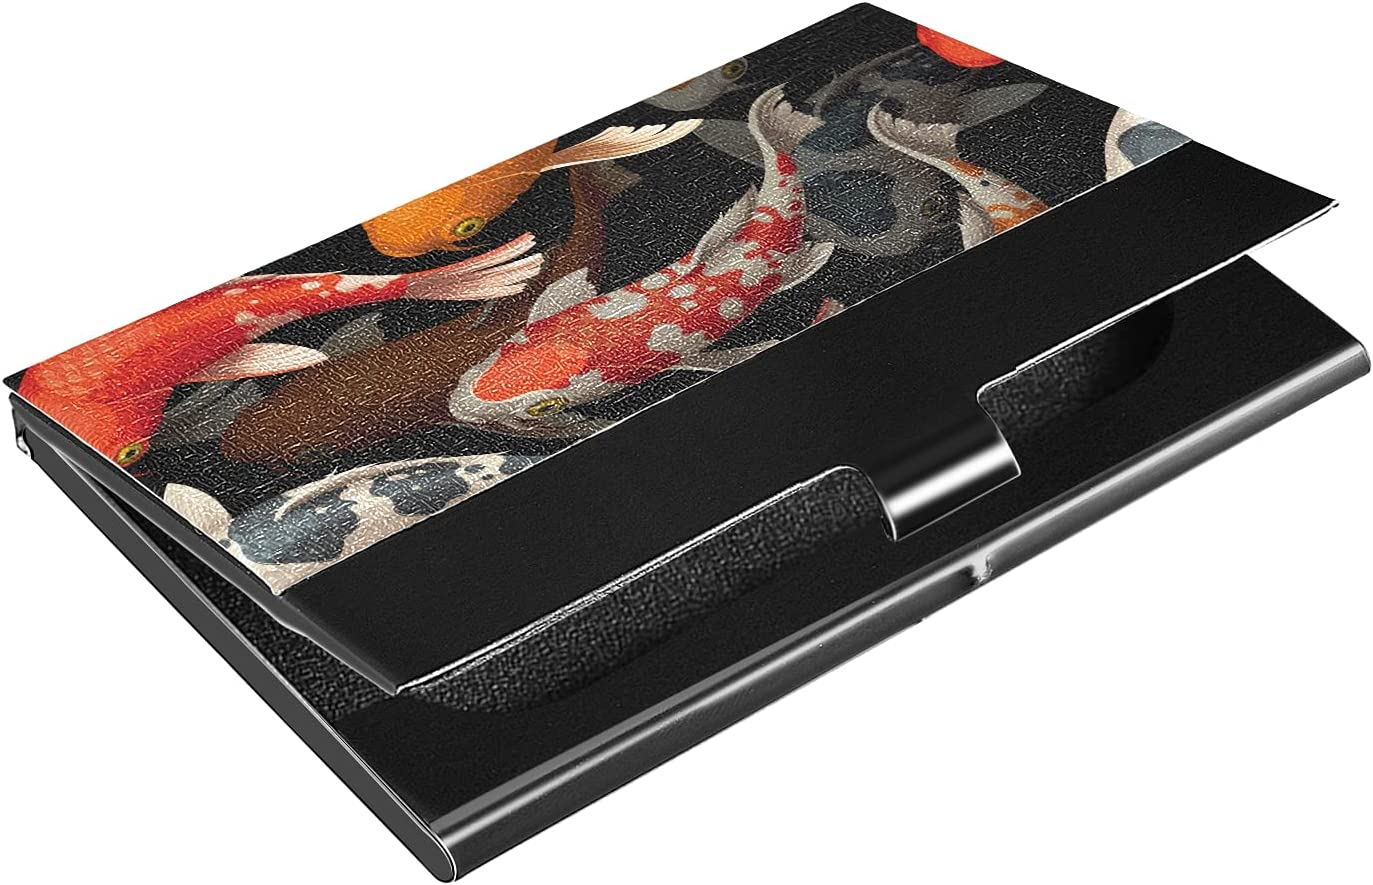 OTVEE Colorful Fish Business Card Holder Wallet Stainless Steel & Leather Pocket Business Card Case Organizer Slim Name Card ID Card Holders Credit Card Wallet Carrier Purse for Women Men